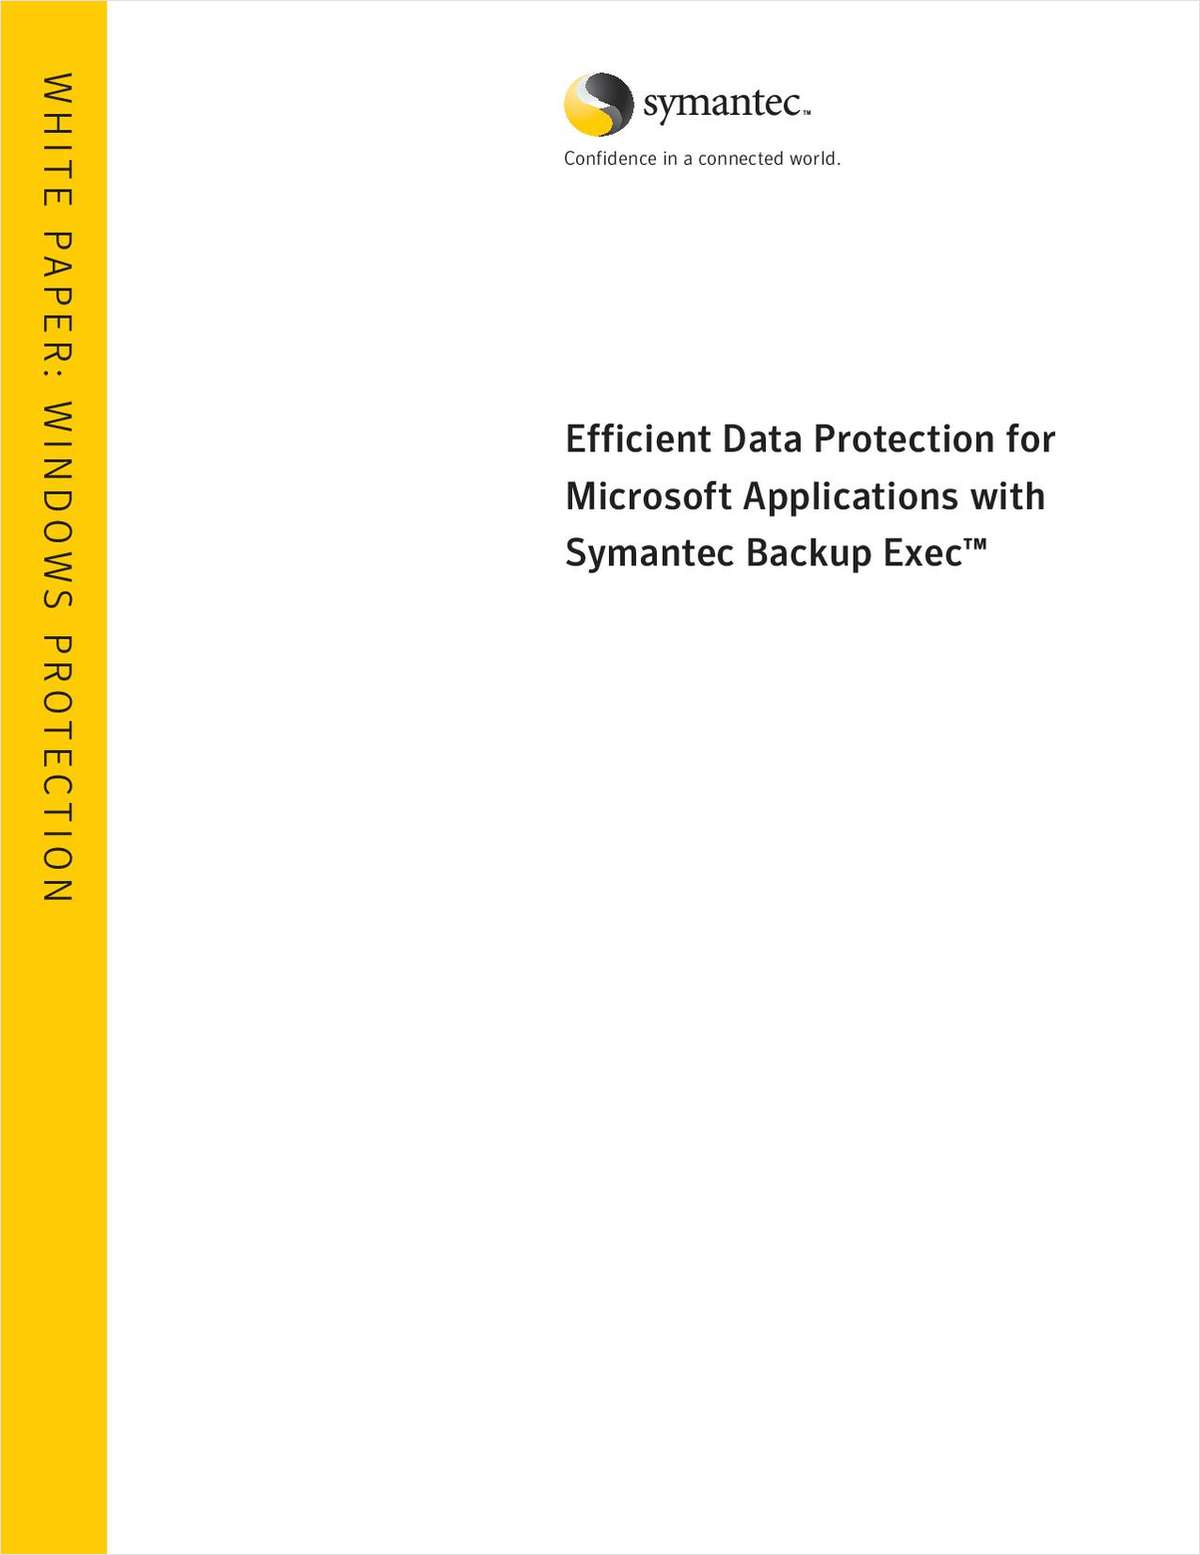 Backup Exec 12: Efficient Data Protection for Microsoft Applications with Symantec Backup Exec™